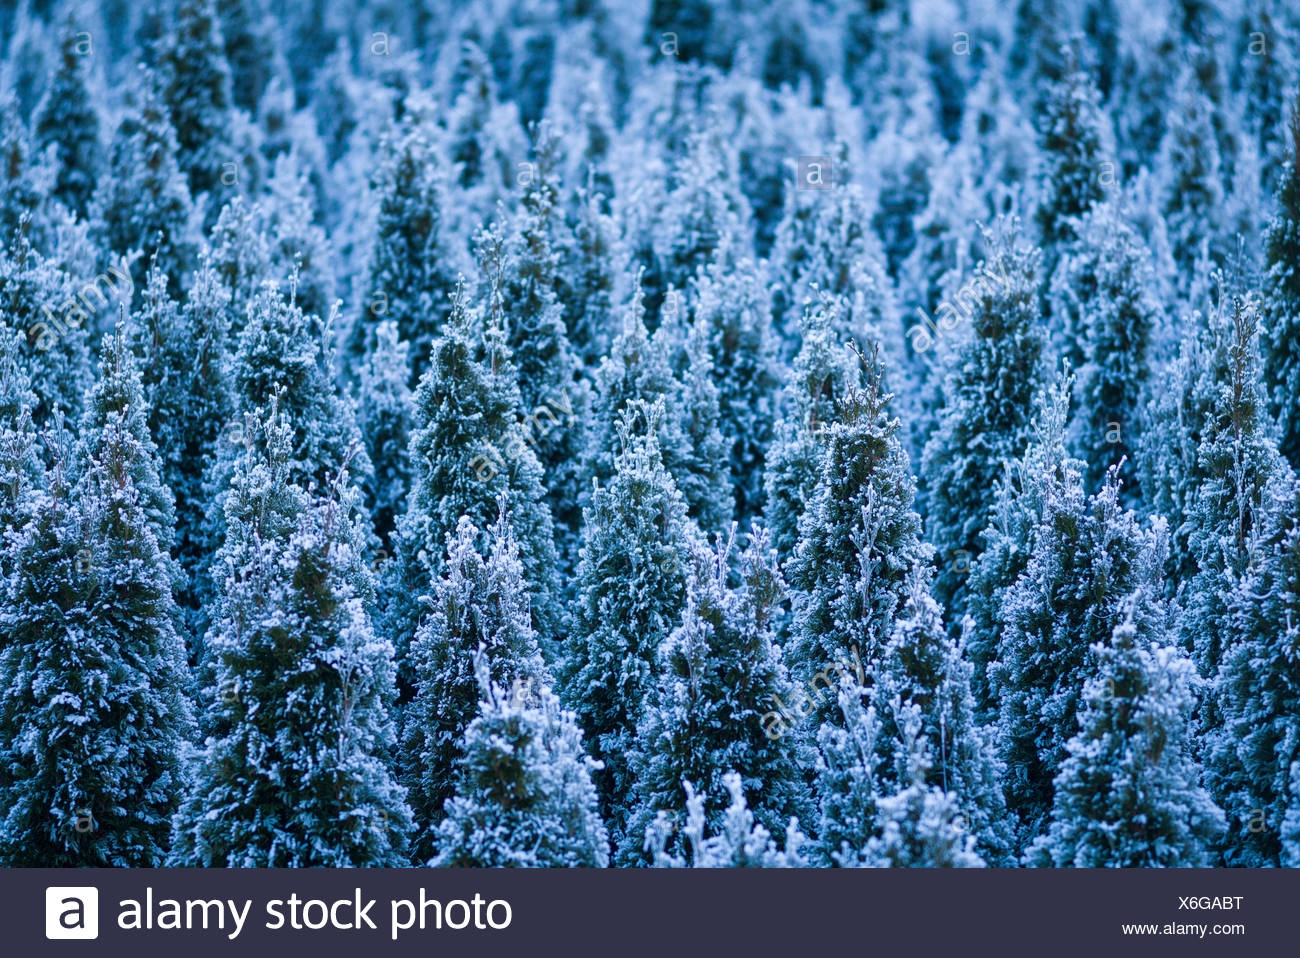 Austria, Tyrol, Stams, frozen evergreen trees, winter - Stock Image